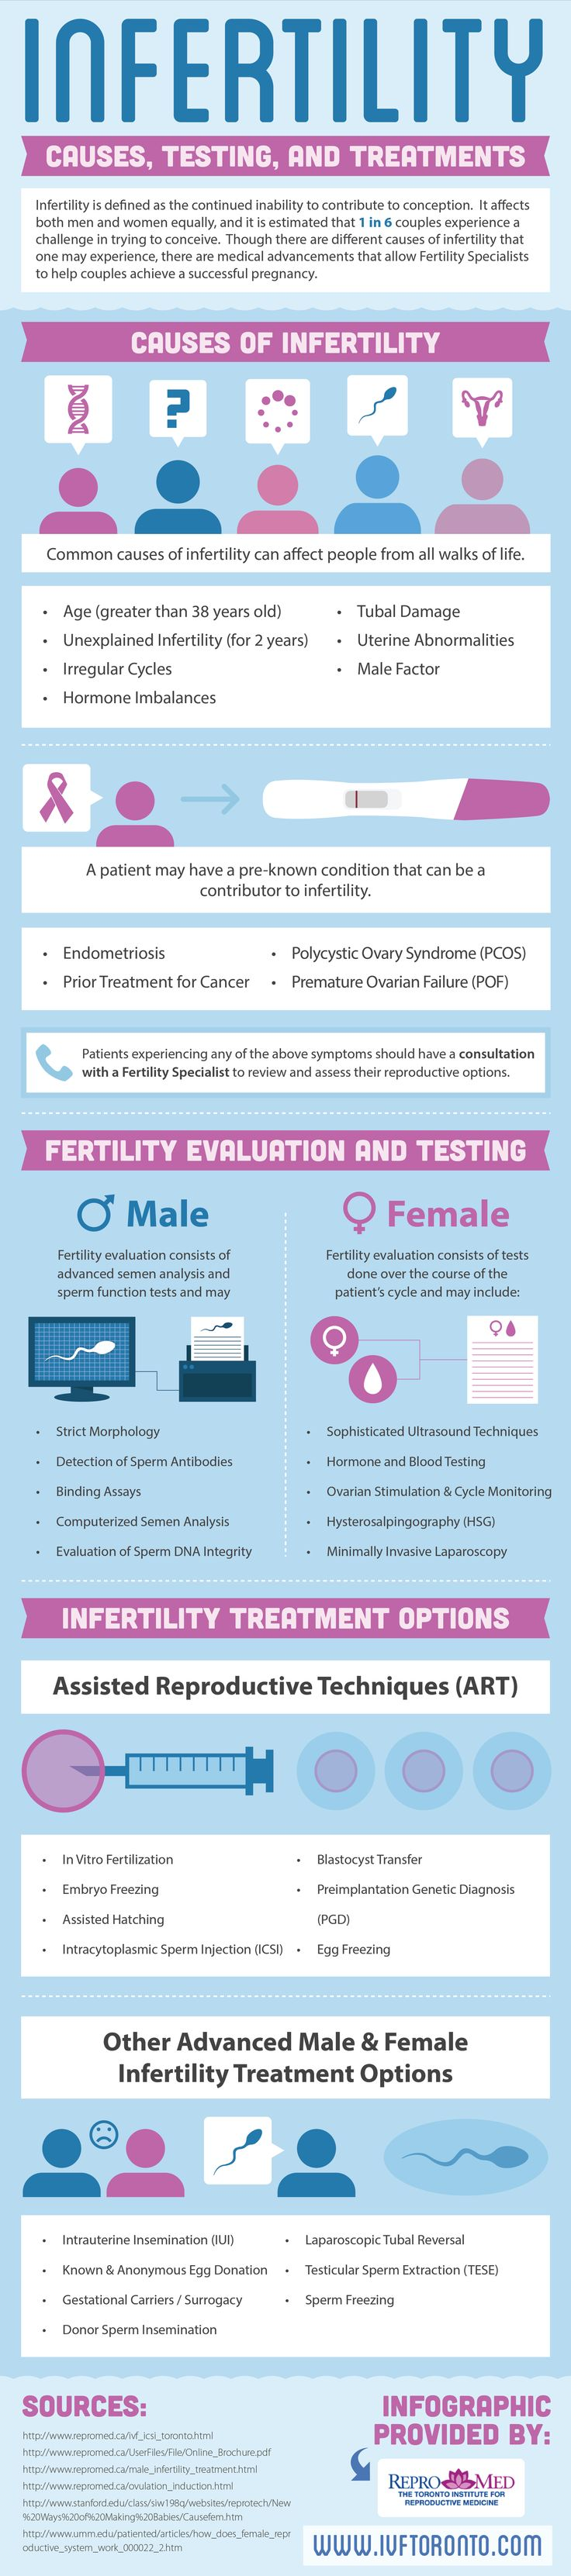 Infertility - Infographic